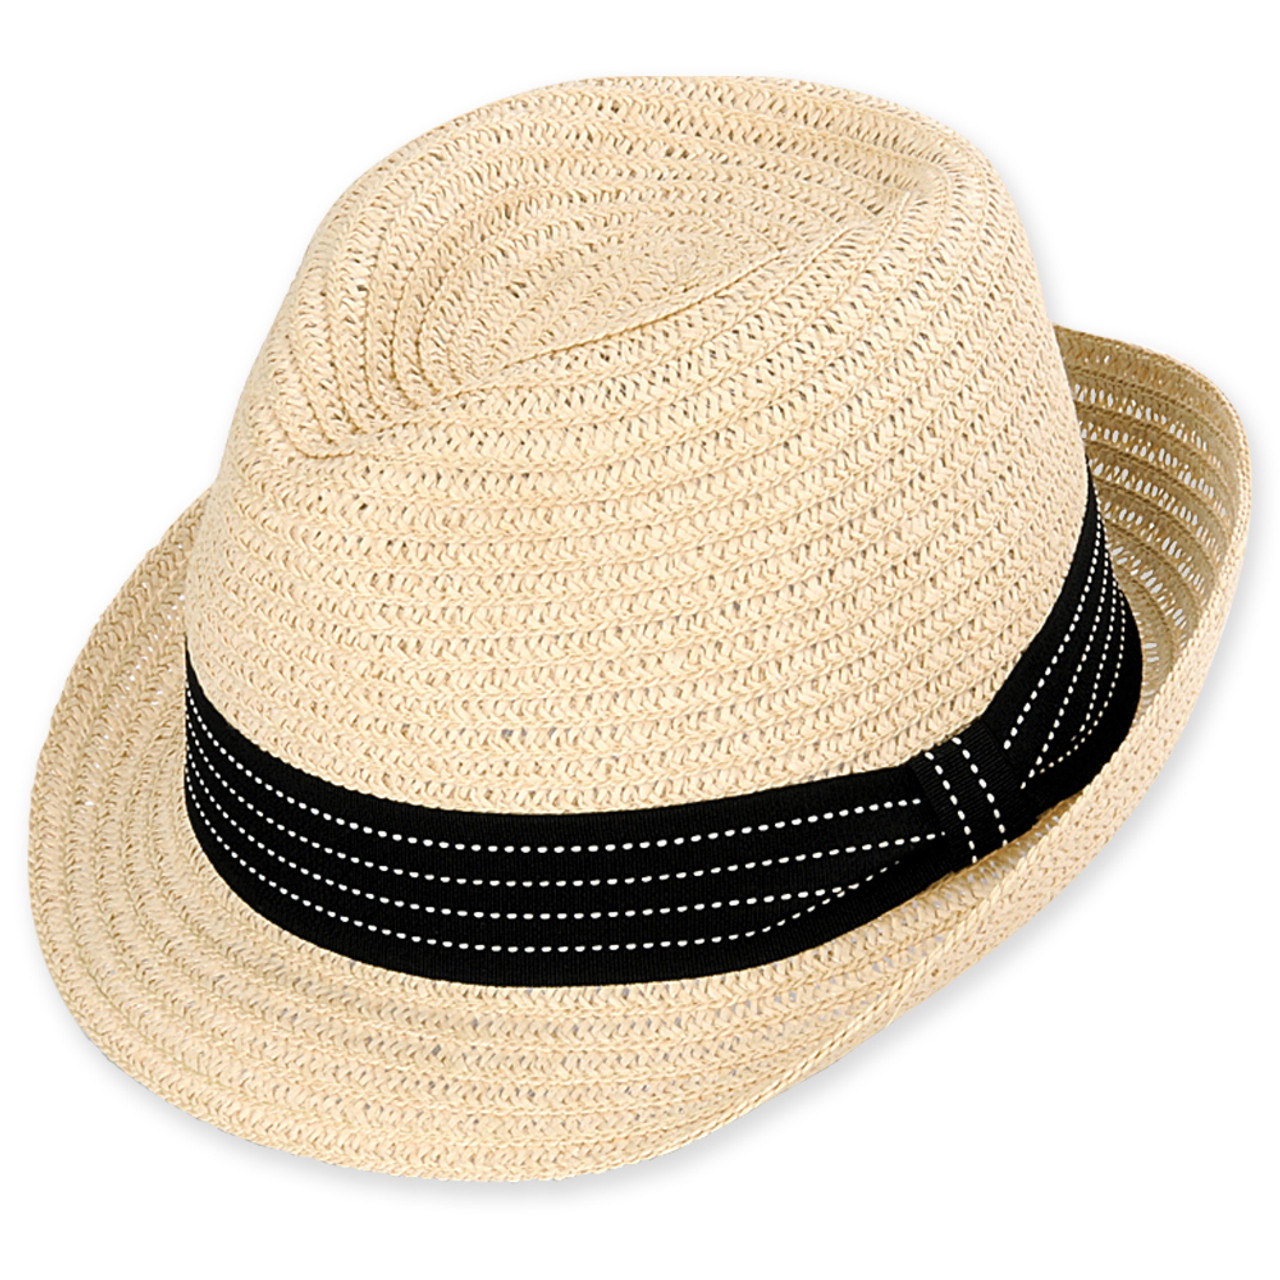 5e4e29ba SWIFT FEDORA HAT PAPERBRAID W/RIBBON TRIM - Sun 'N' Sand Accessories